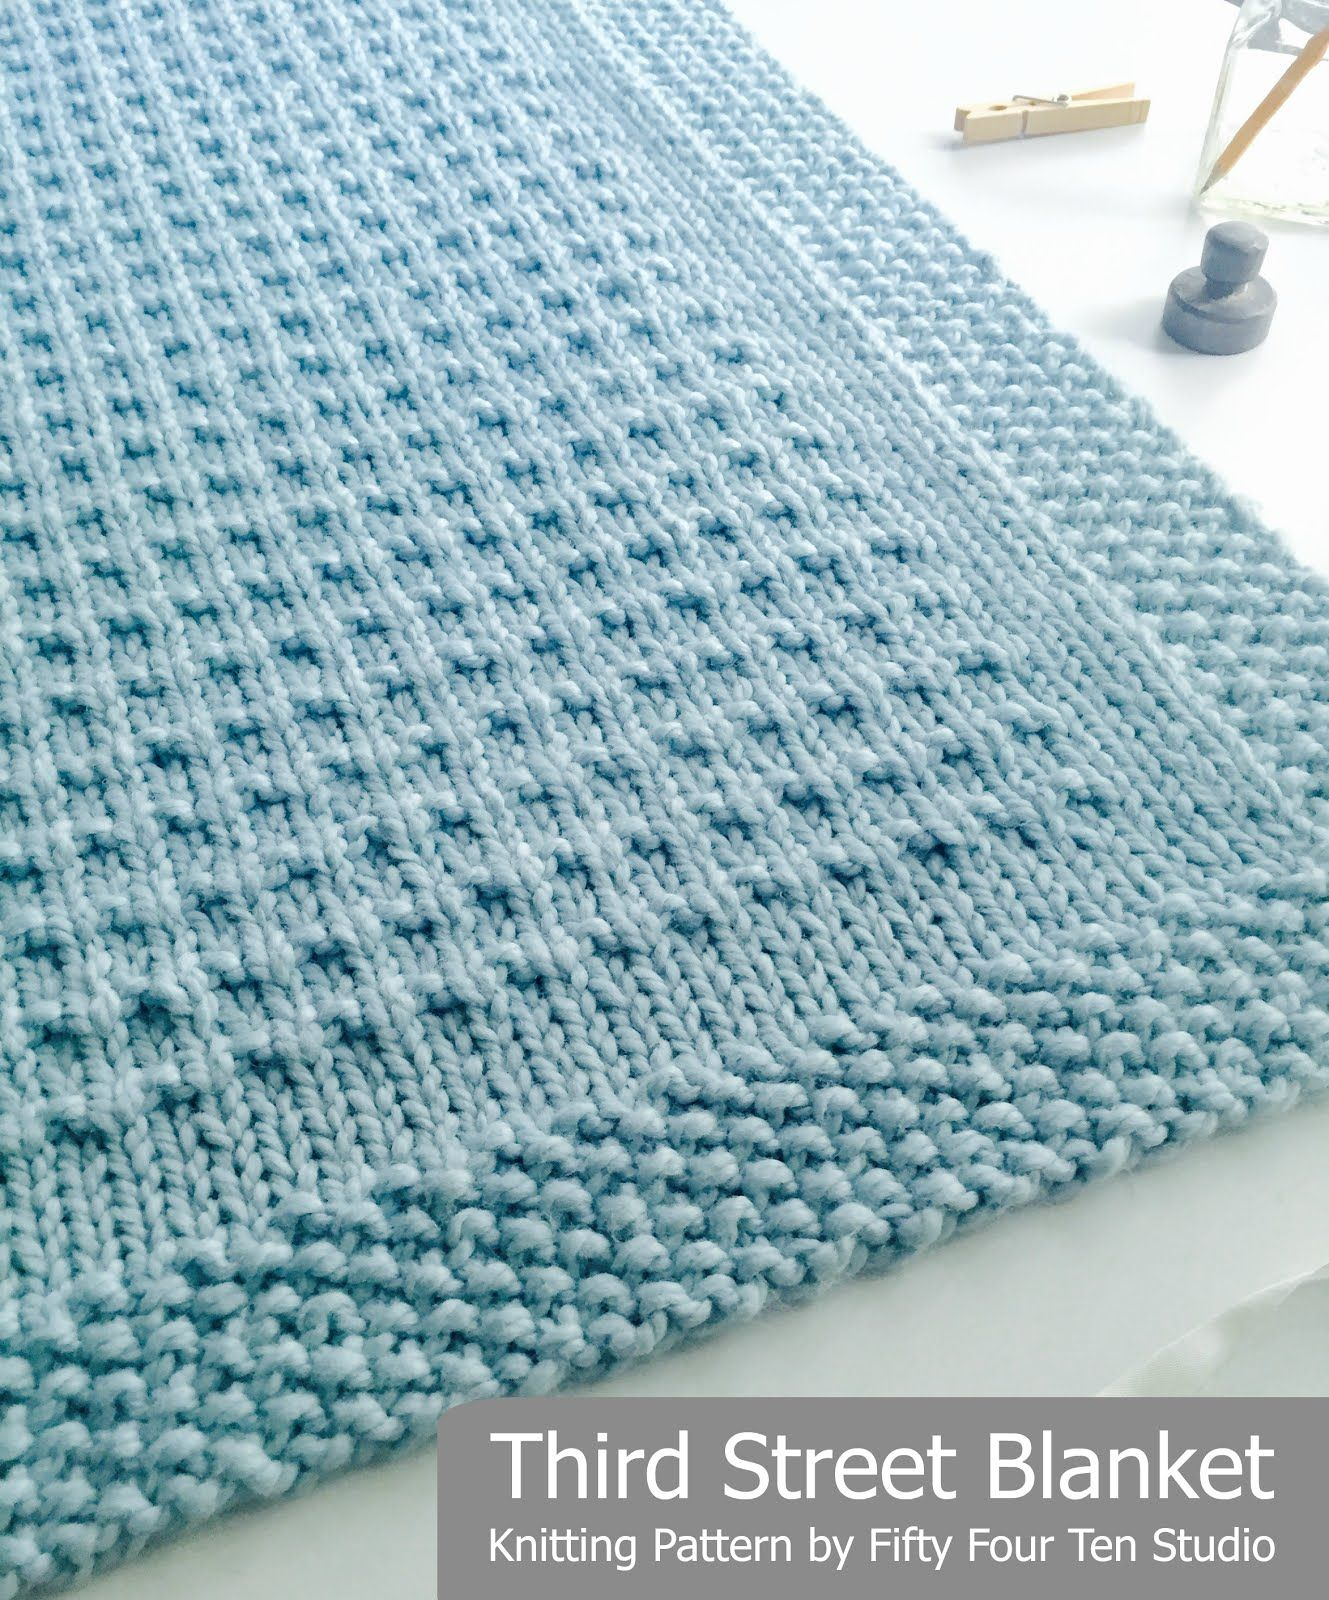 Third Street Blanket knitting pattern by Fifty Four Ten ...